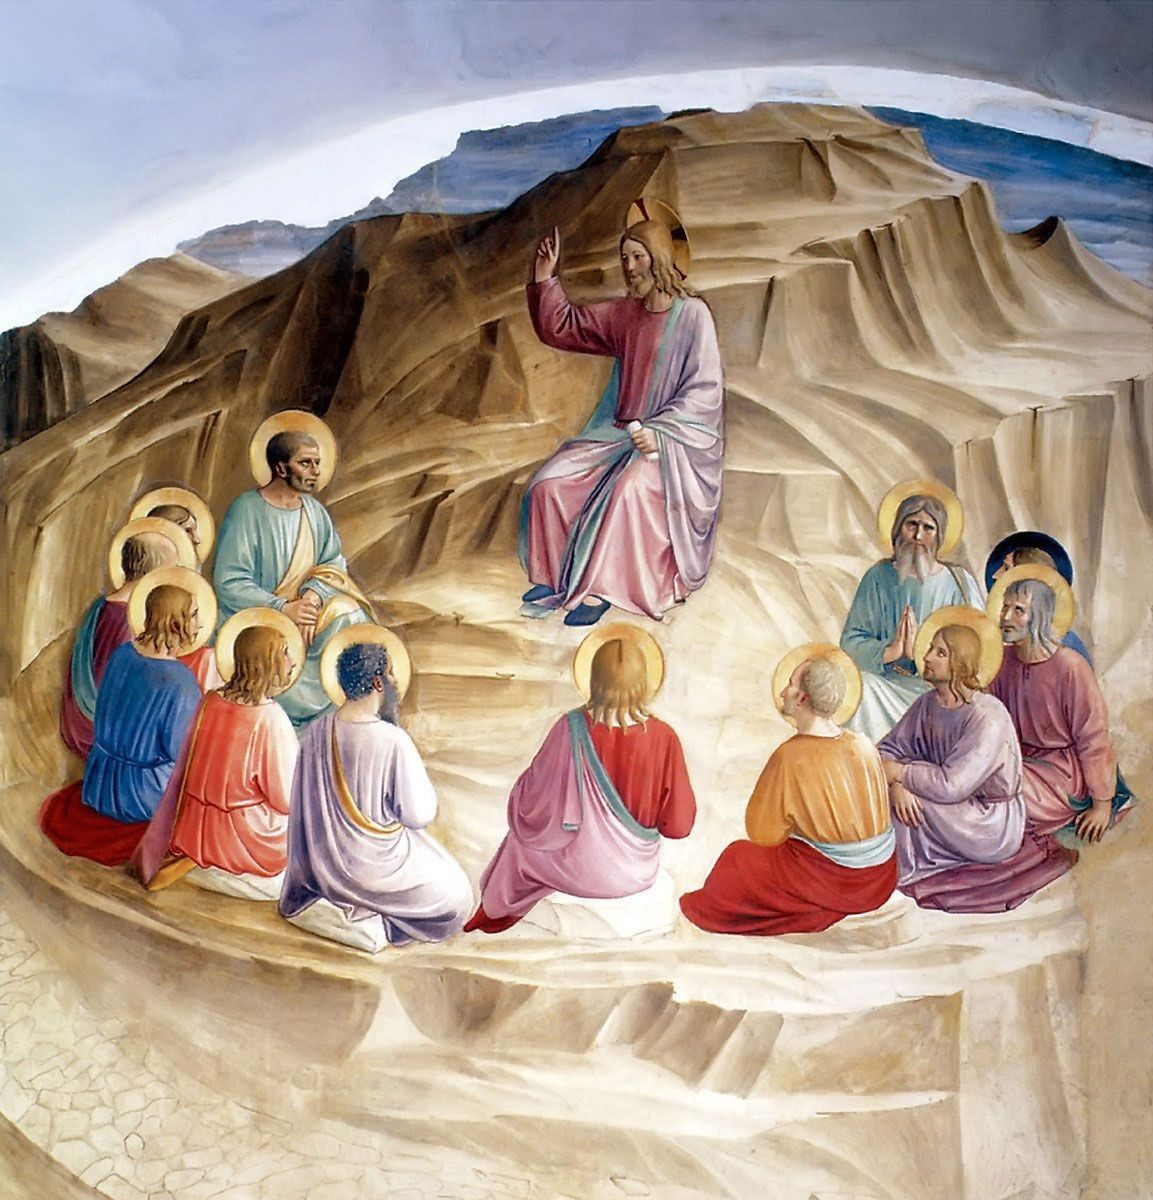 a history of sermon on the mount The sermon on the mount (anglicized from the matthean vulgate latin section title: sermo in monte) is a collection of sayings and teachings of jesus, .